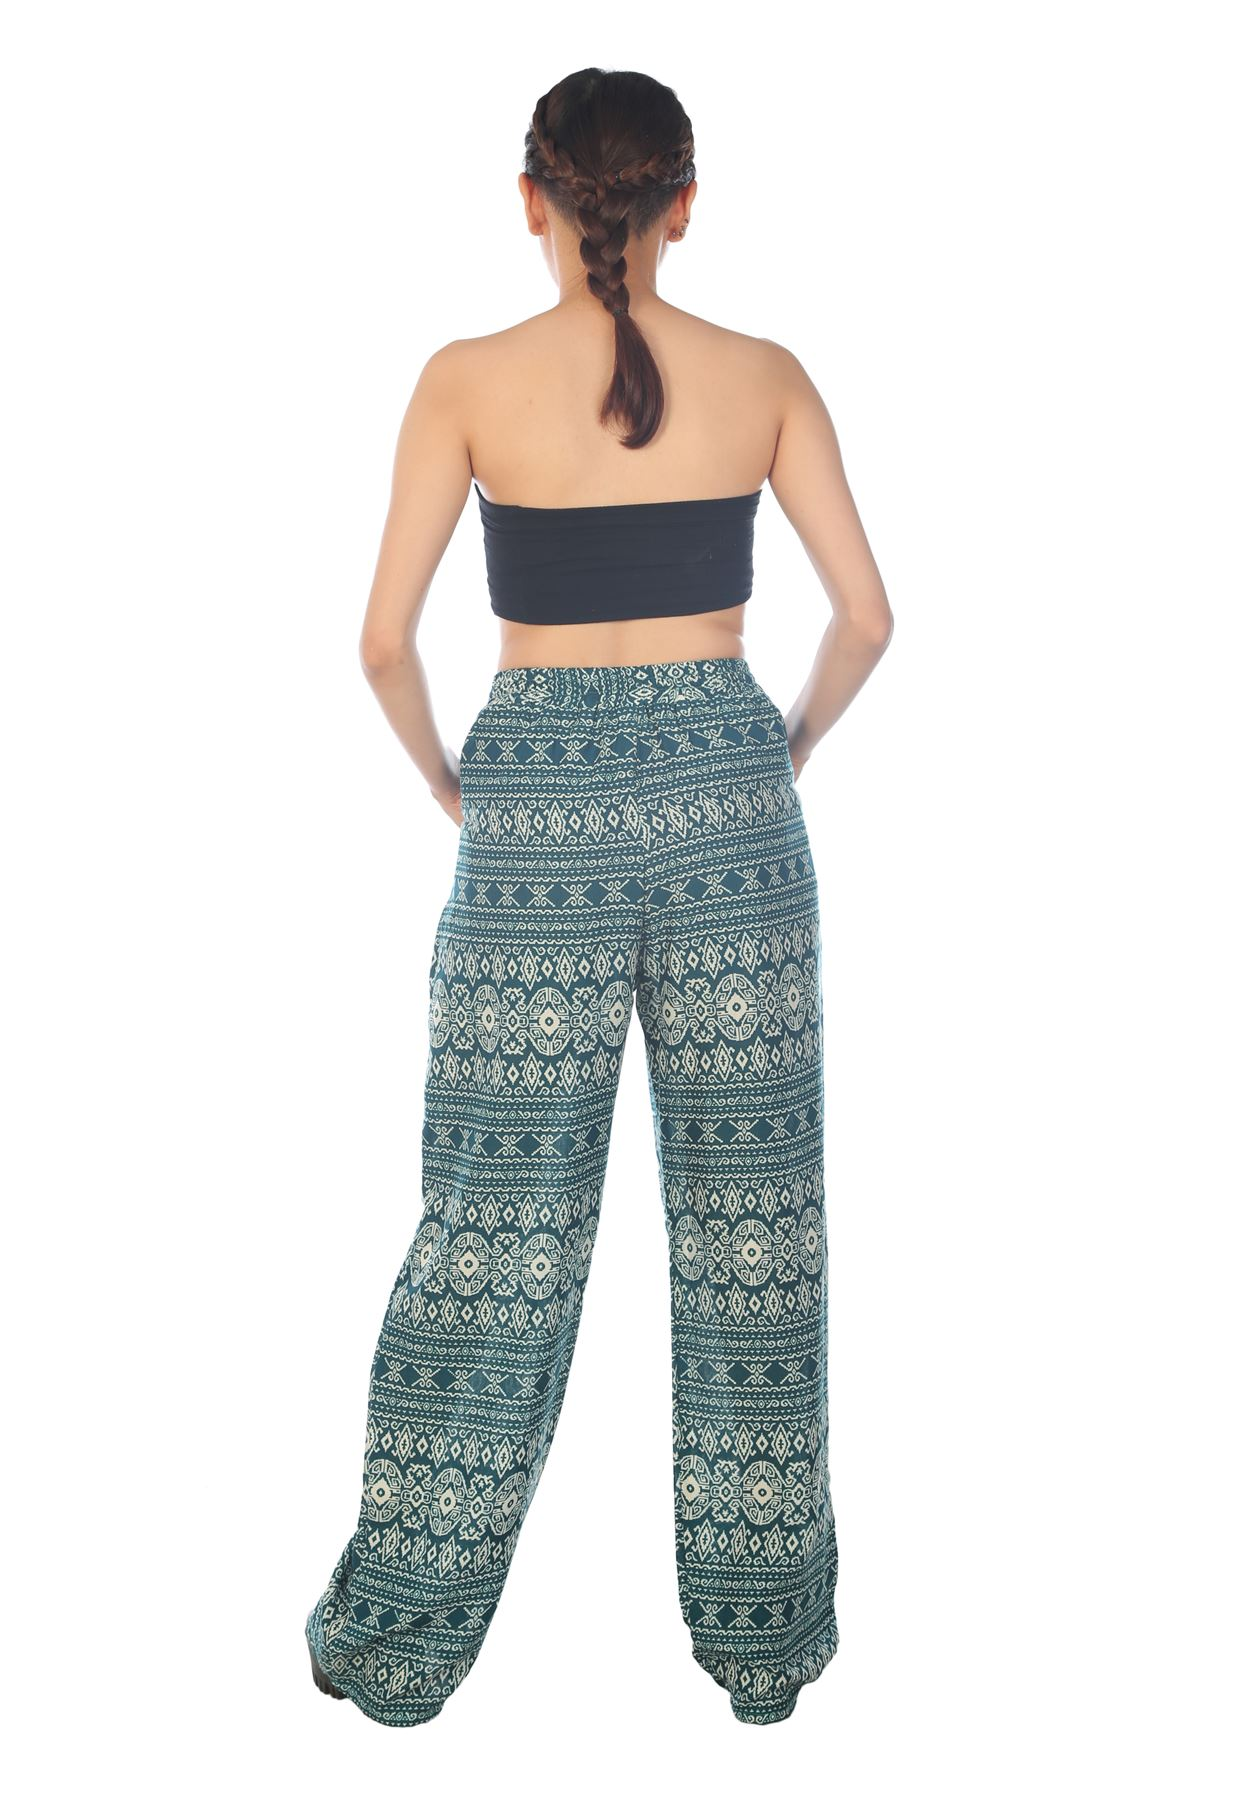 Princess Jasmine looking enticing and ethereal in a flowing harem pants - this is one of the most popular and enduring images of a harem pant -Today's fashion conscious girls also crave this pants for its cool casual and attractive looks.